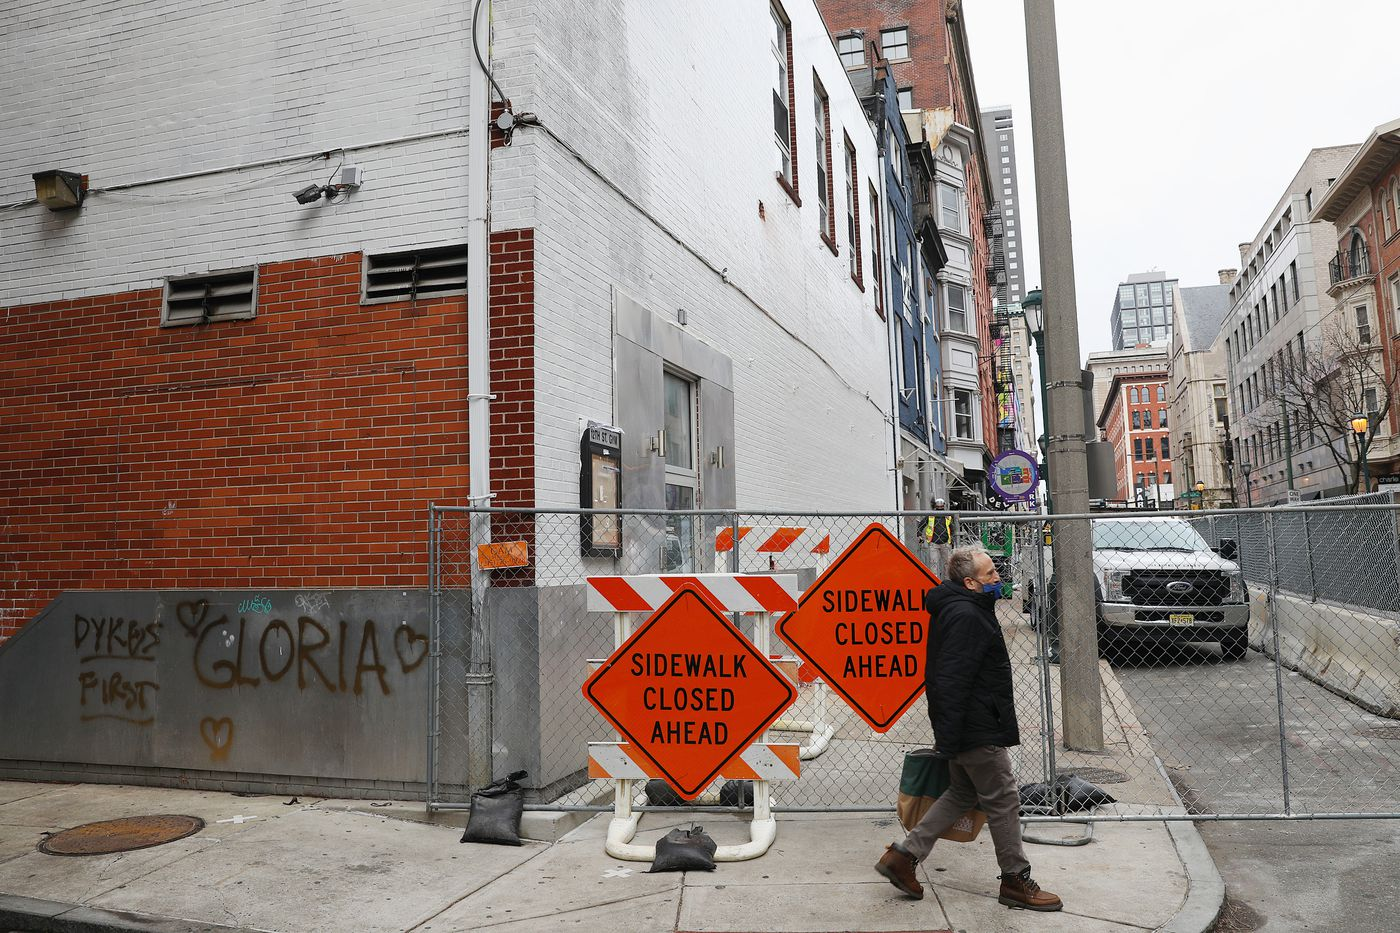 The wall of the former 12th Street Gym, which held a mural of Latina LGBTQ activist Gloria Casarez, is pictured in Center City Philadelphia on Thursday, Dec. 24, 2020. The mural was painted over without notice as part of a developer's plan to raze the building.